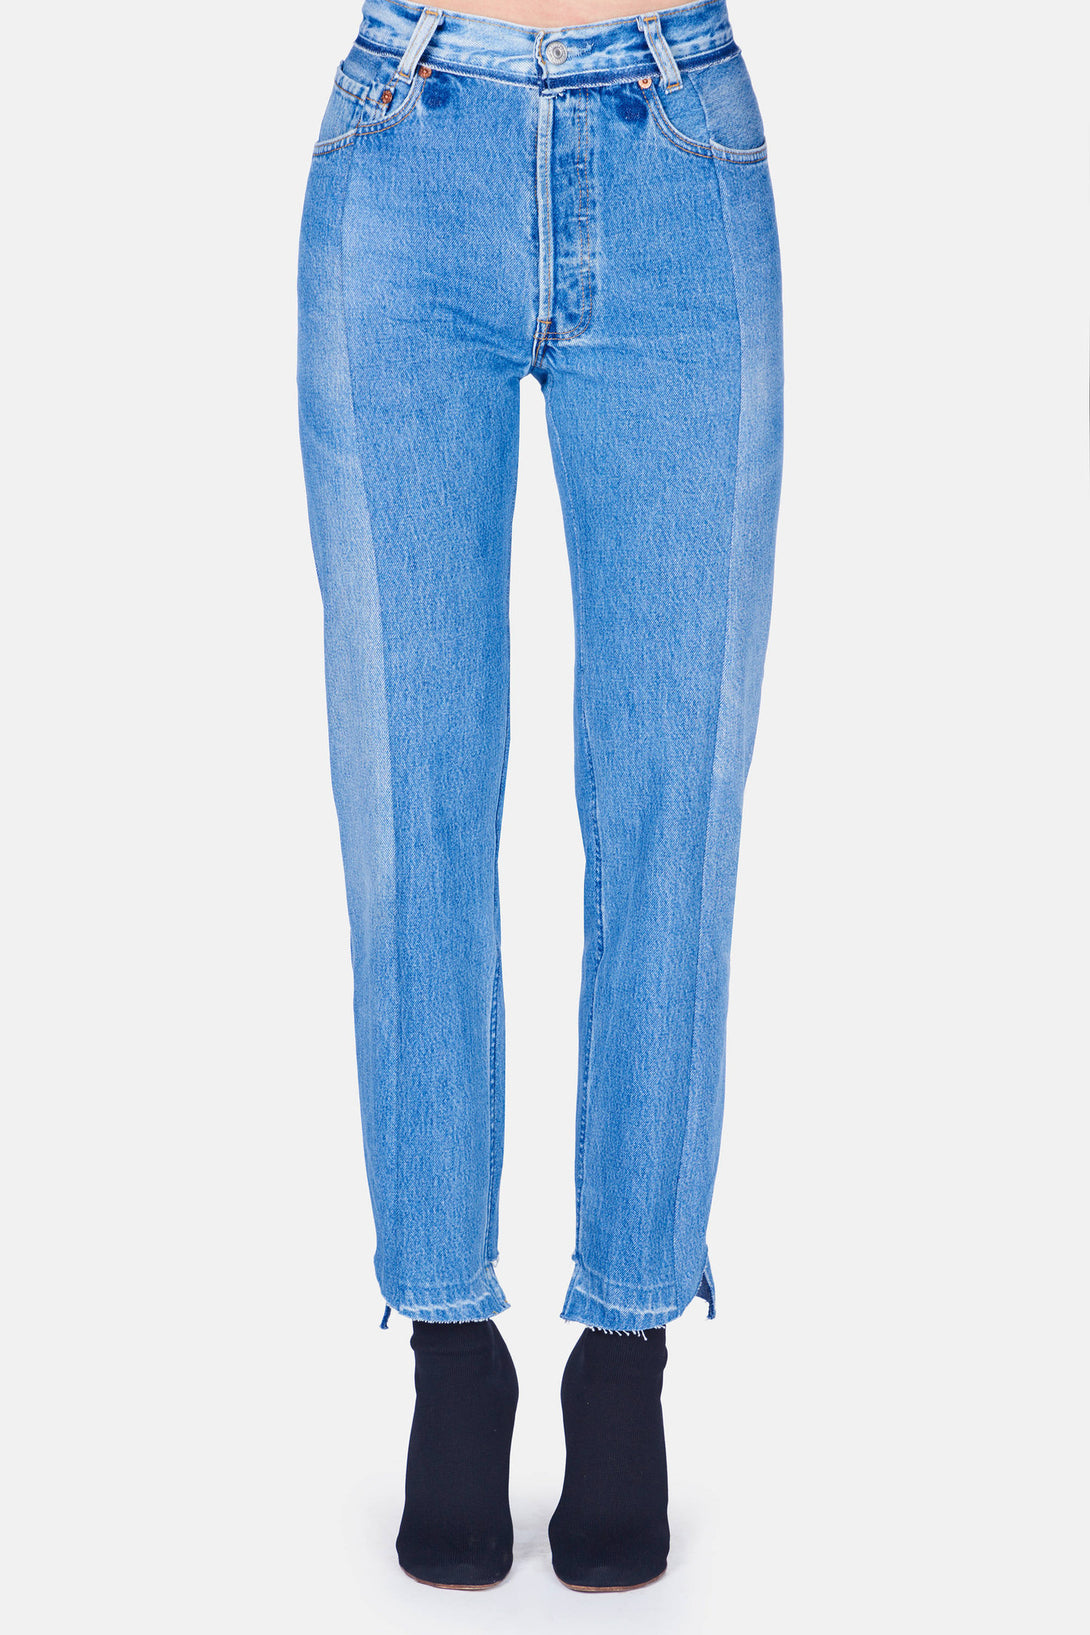 Reworked Jean - Blue